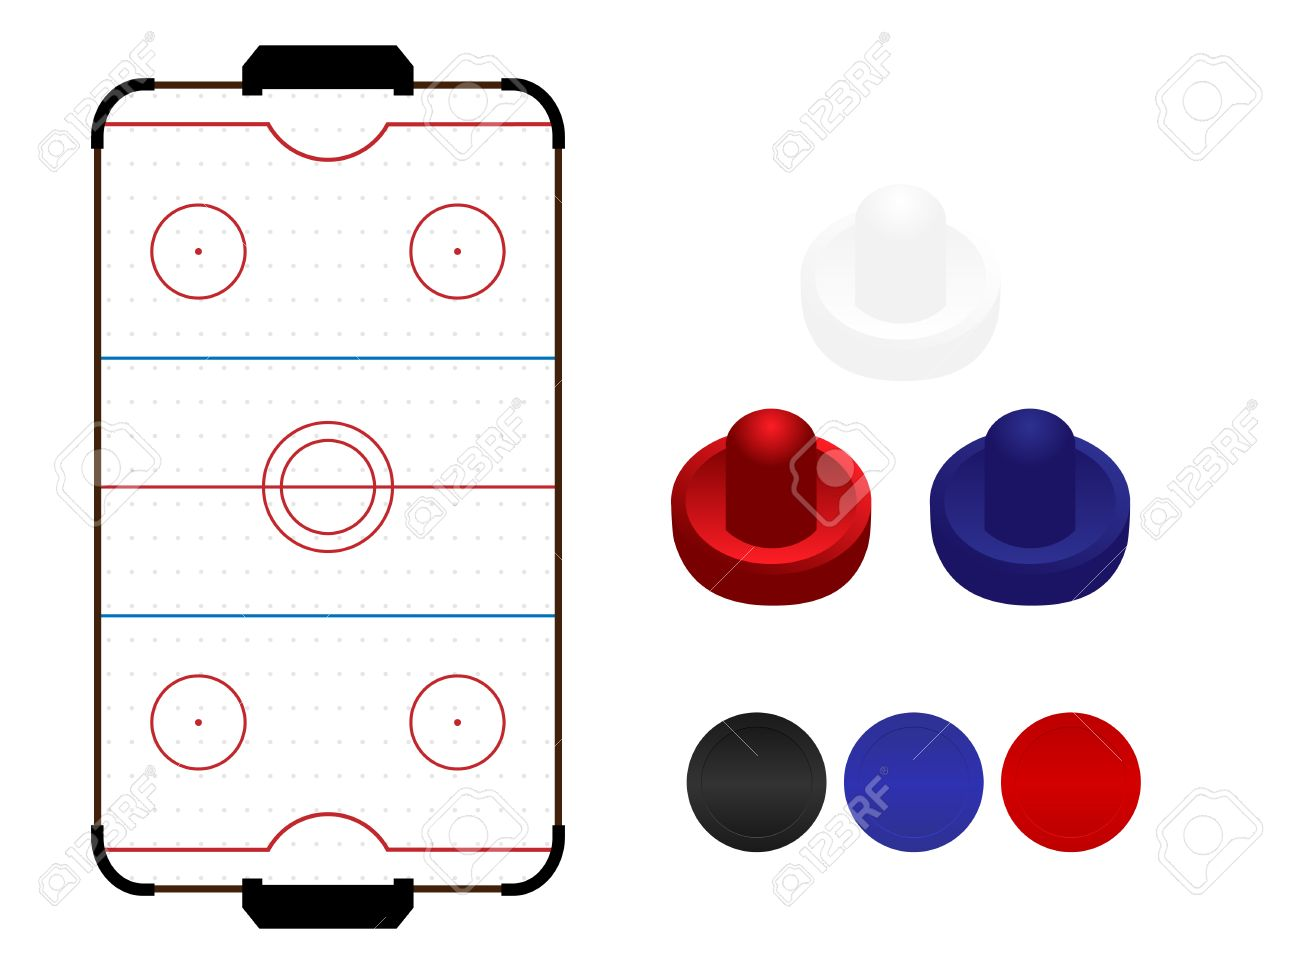 Bon Air Hockey Table With Mallets And Pucks Stock Vector   35030126